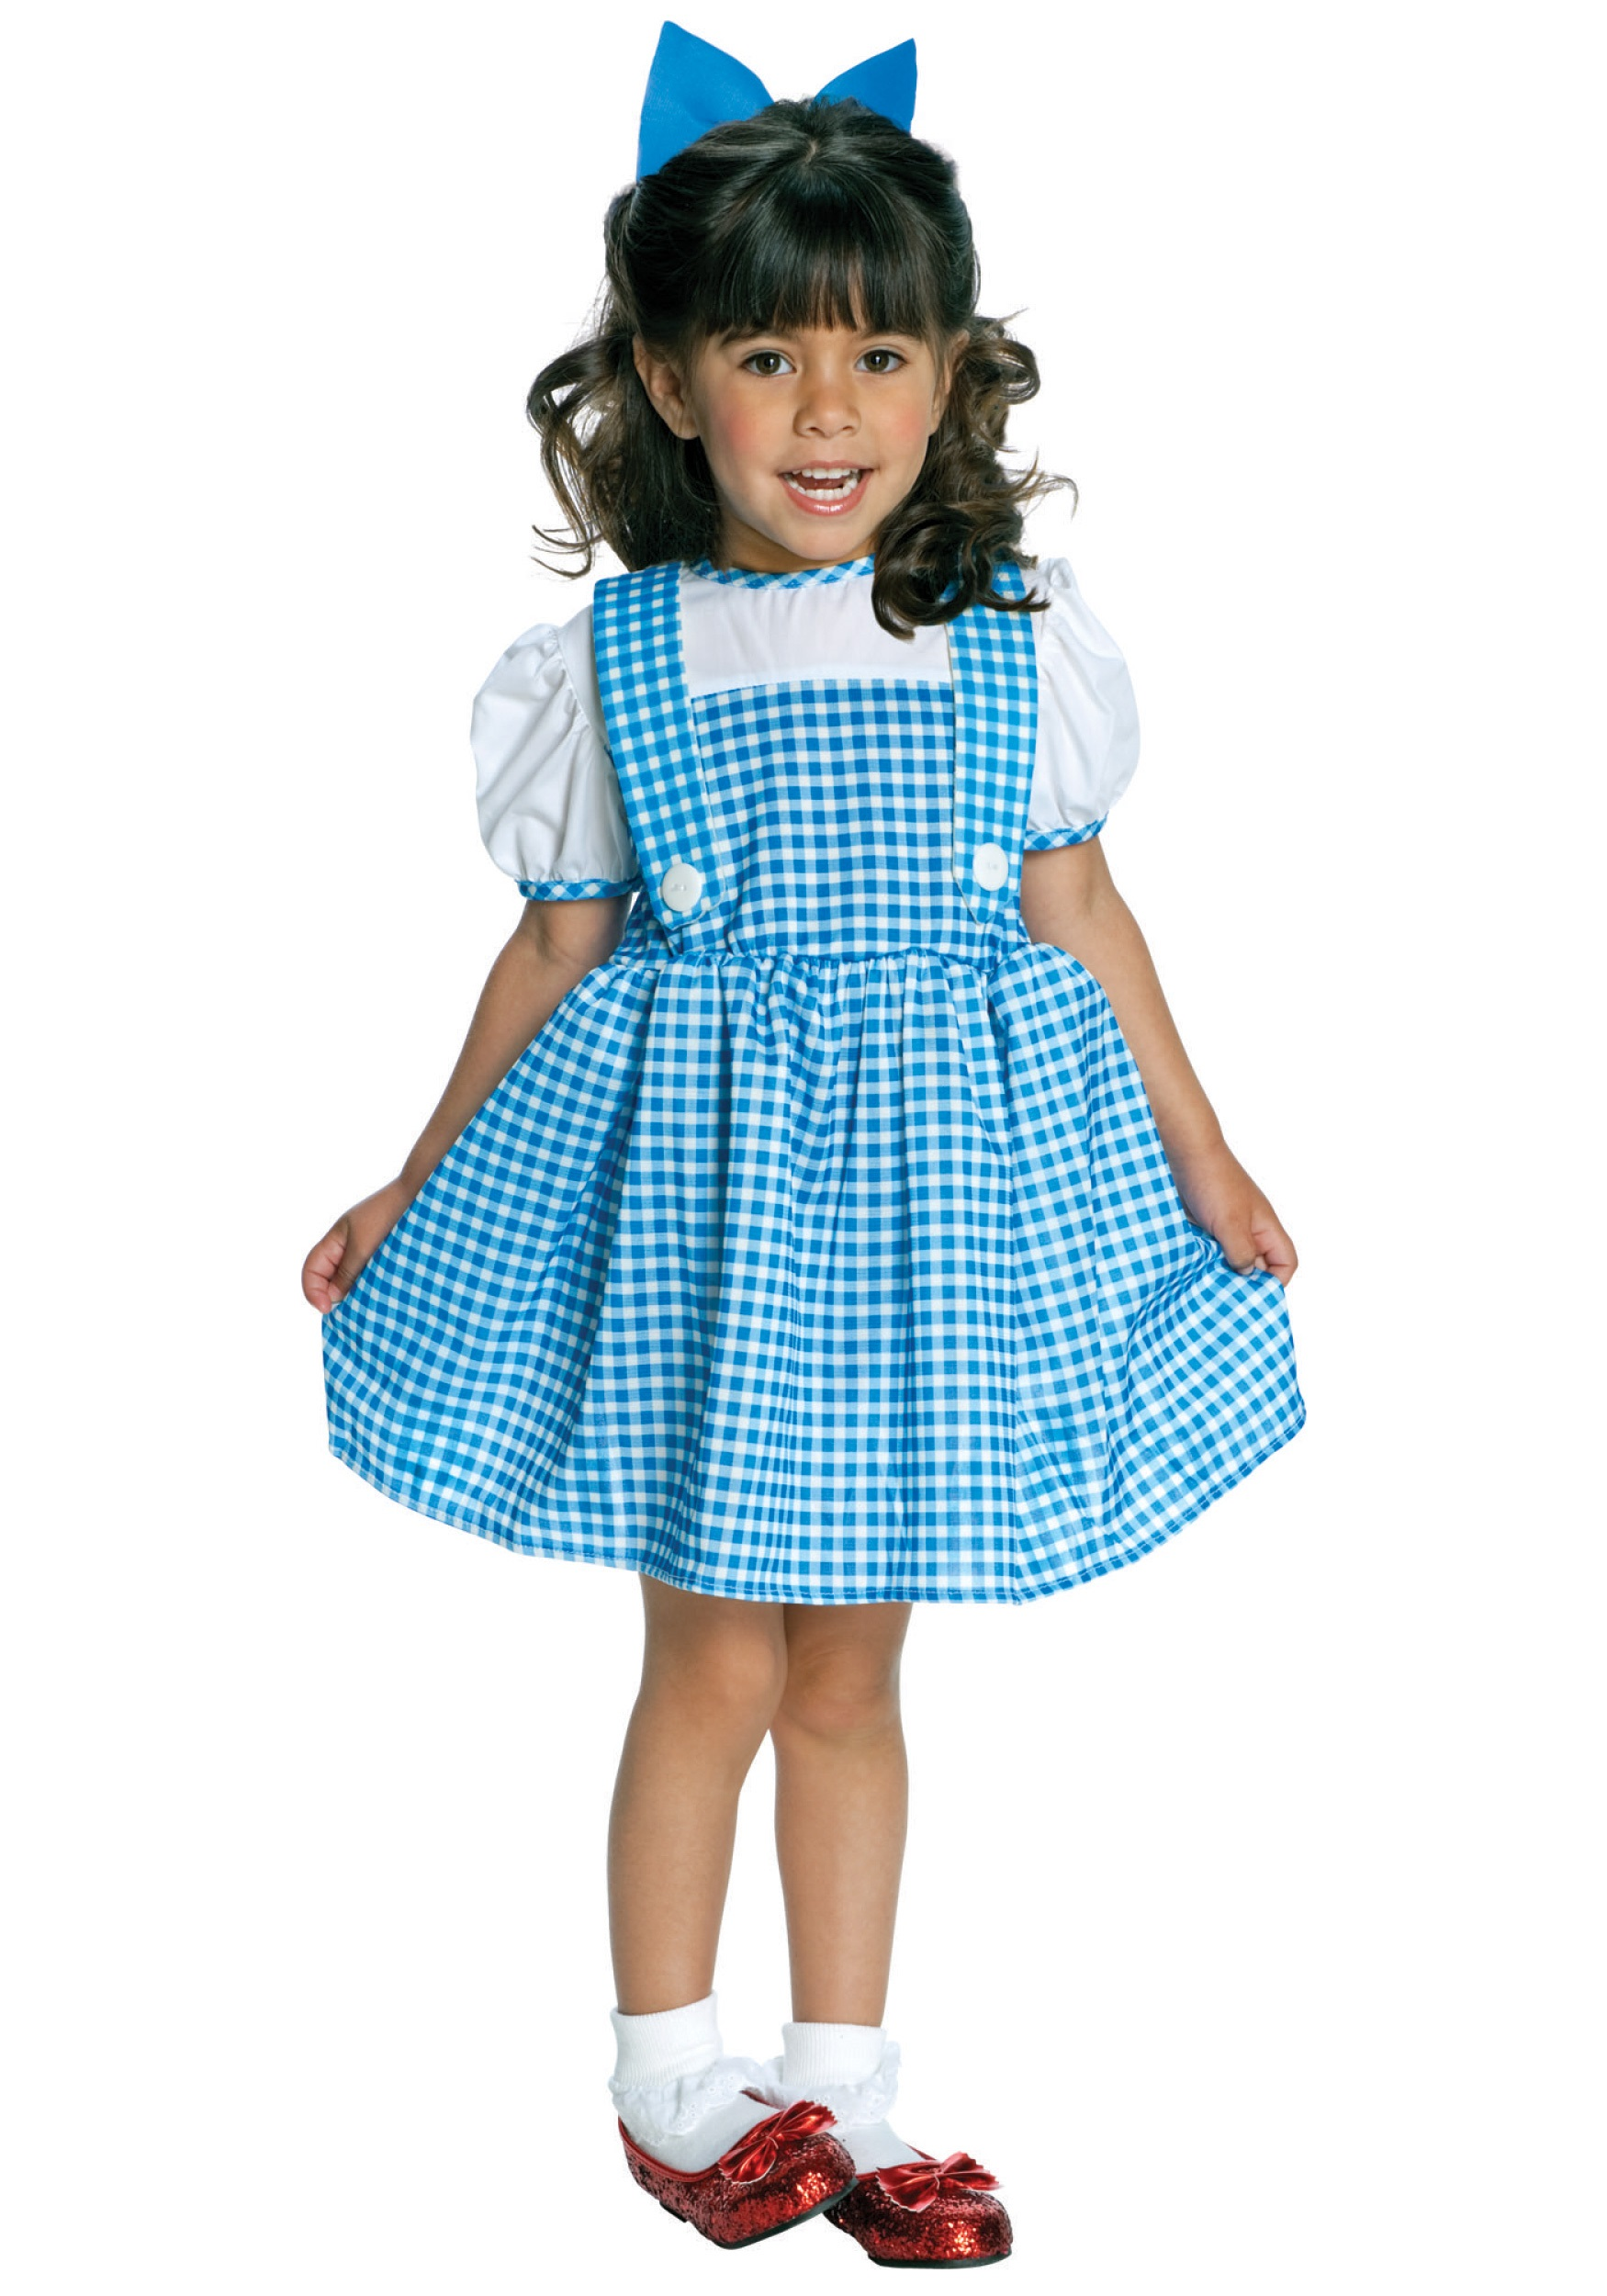 dorothy costumes & dresses - wizard of oz dorothy costumes